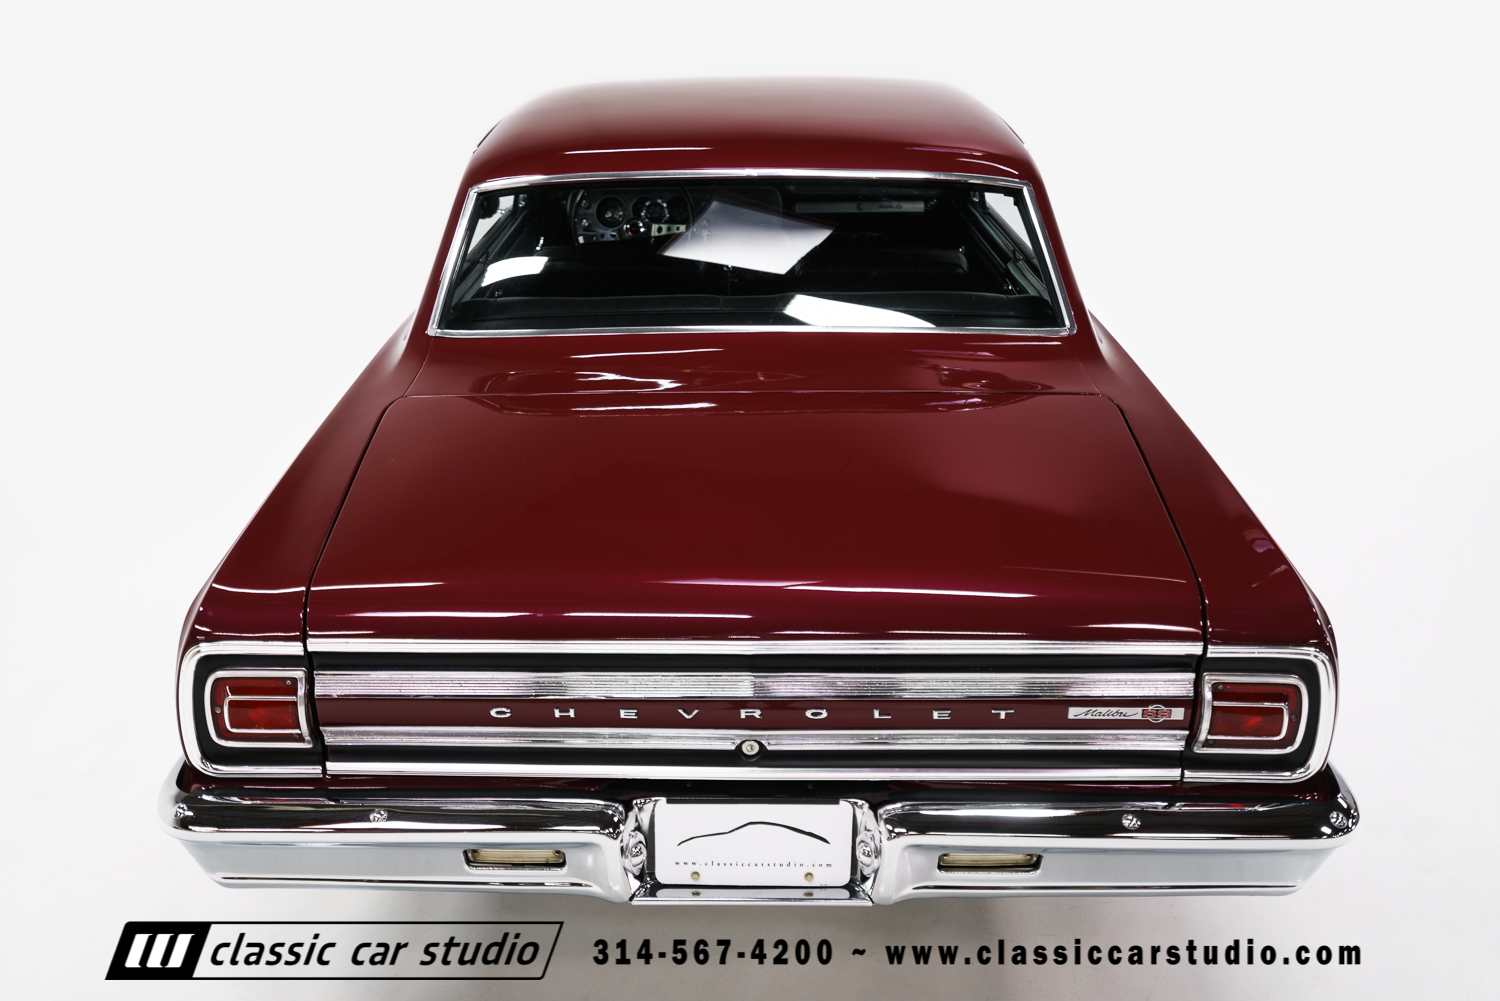 1965 Chevrolet Chevelle Ss Classic Car Studio Holley 4150 Exploded Diagrams The Old Manual Project Previous Next